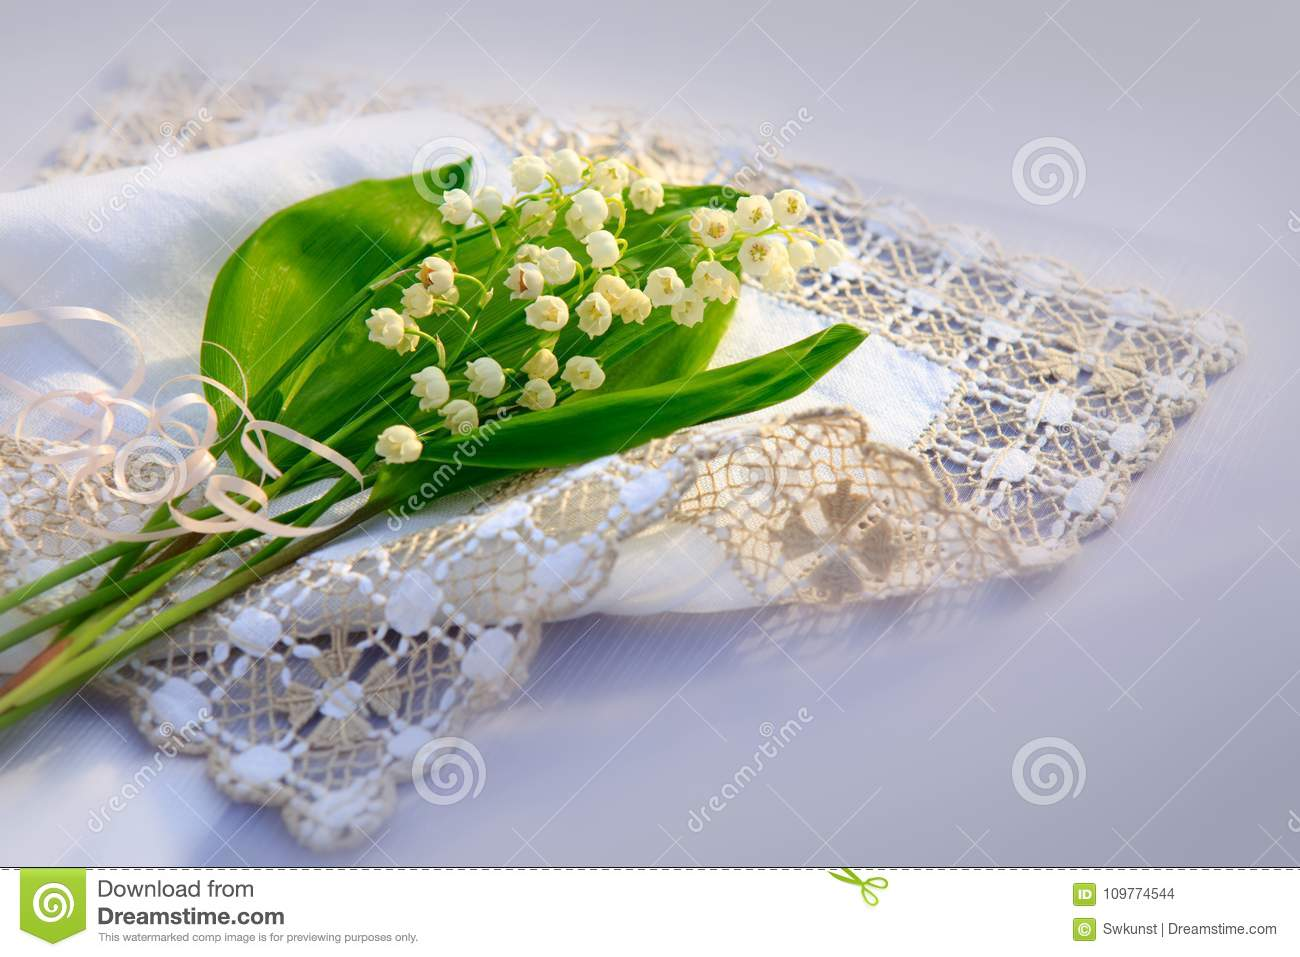 Lily of the valley bouquet on the table stock photo image of download lily of the valley bouquet on the table stock photo image of flower izmirmasajfo